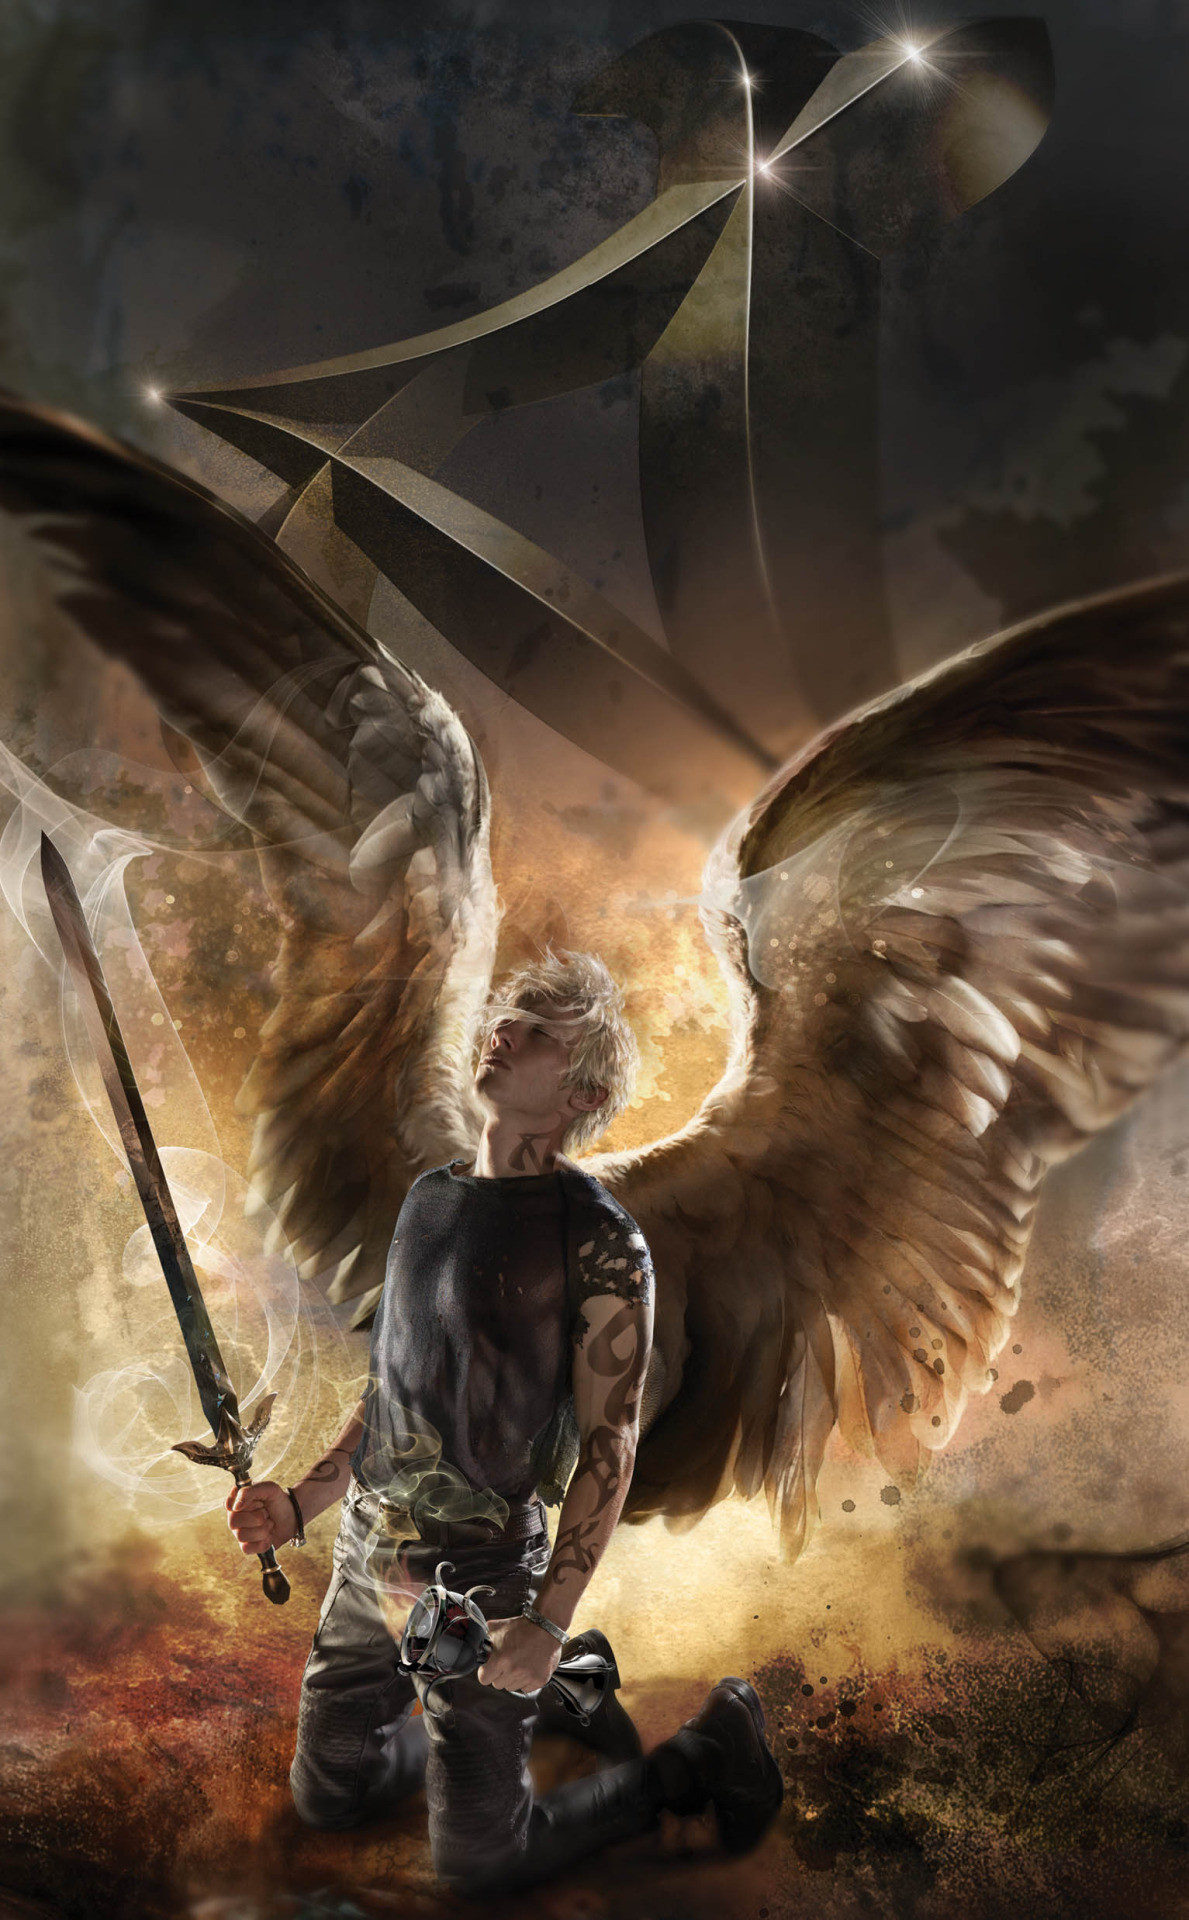 1189x1920 Sebastian - City of Heavenly Fire (Shadowhunters, The Mortal Instruments,  book six) by Cassandra Clare, special edition cover